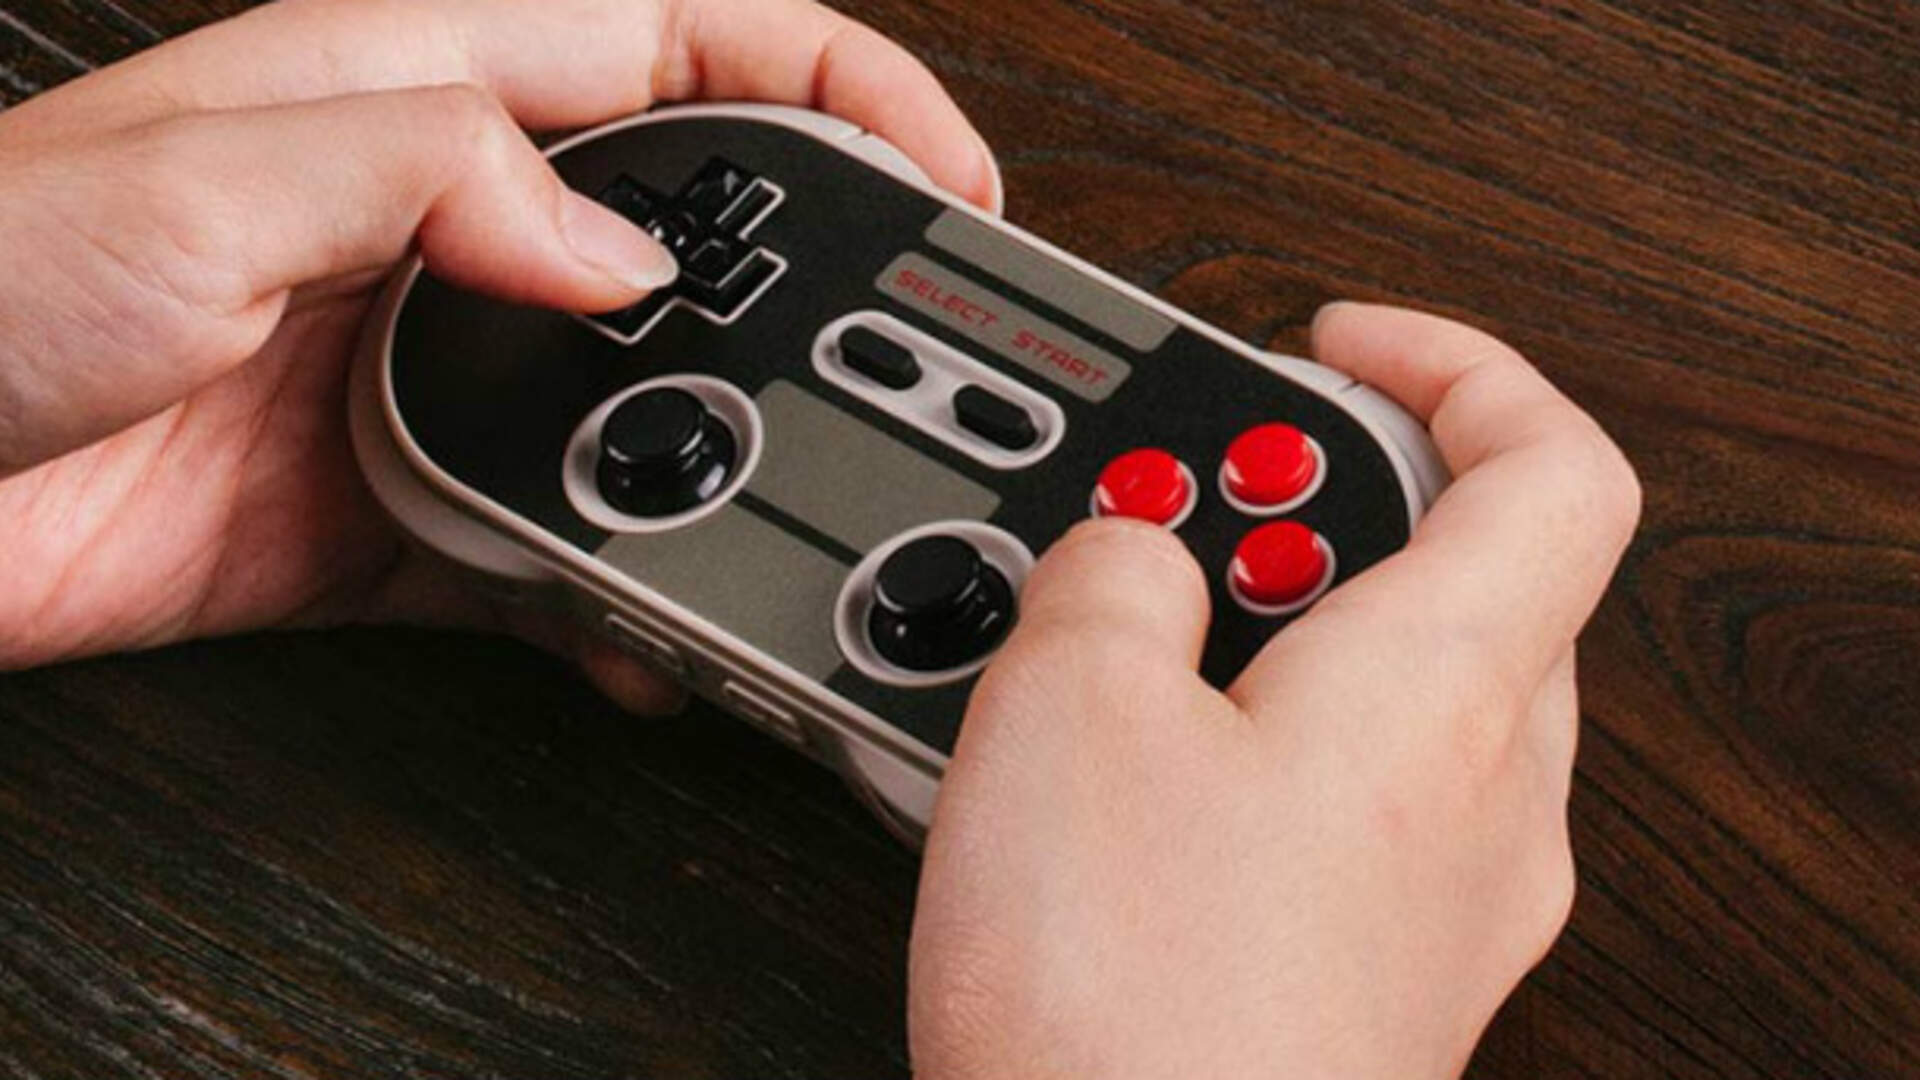 8BitDo Updates Controllers With Nintendo Switch Support